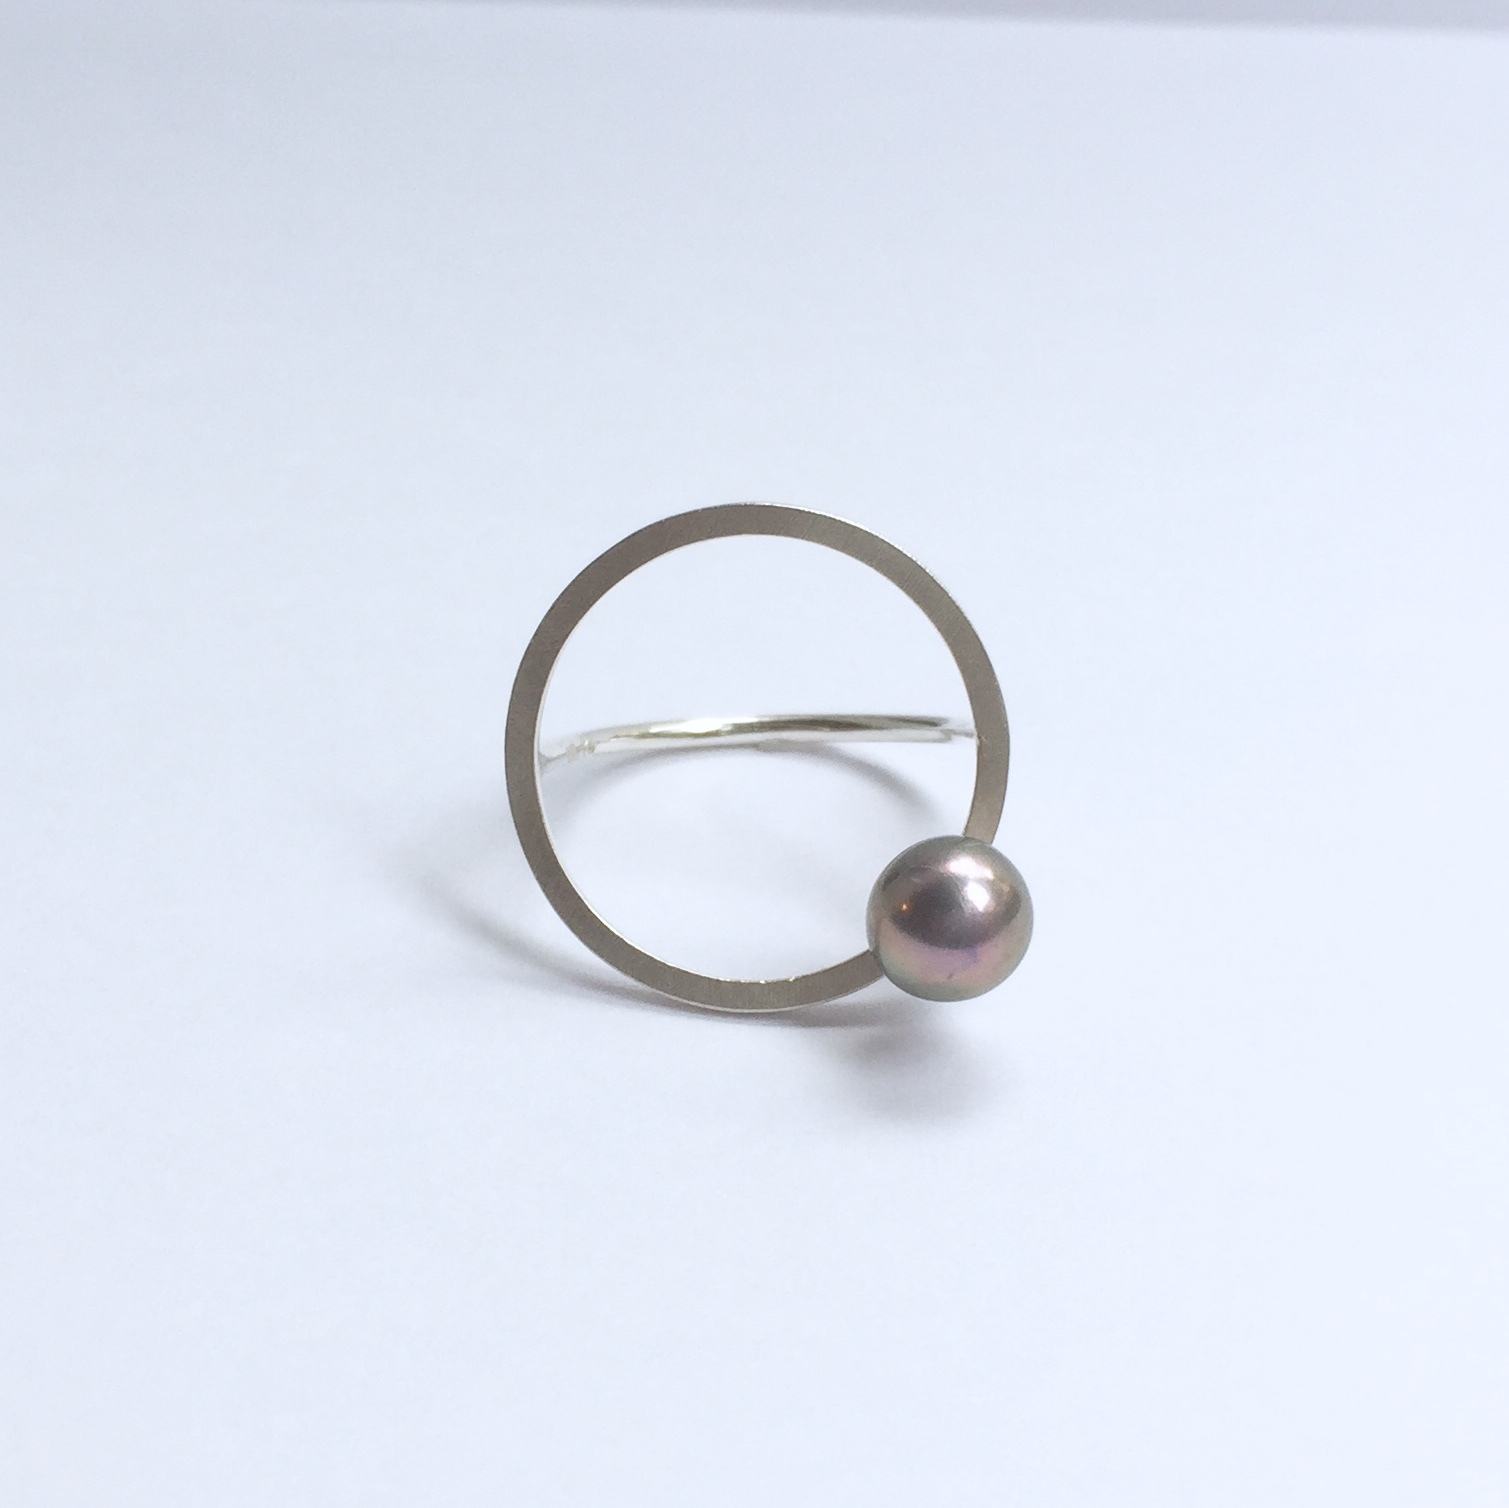 One Pearl on Circle Ring - Silver